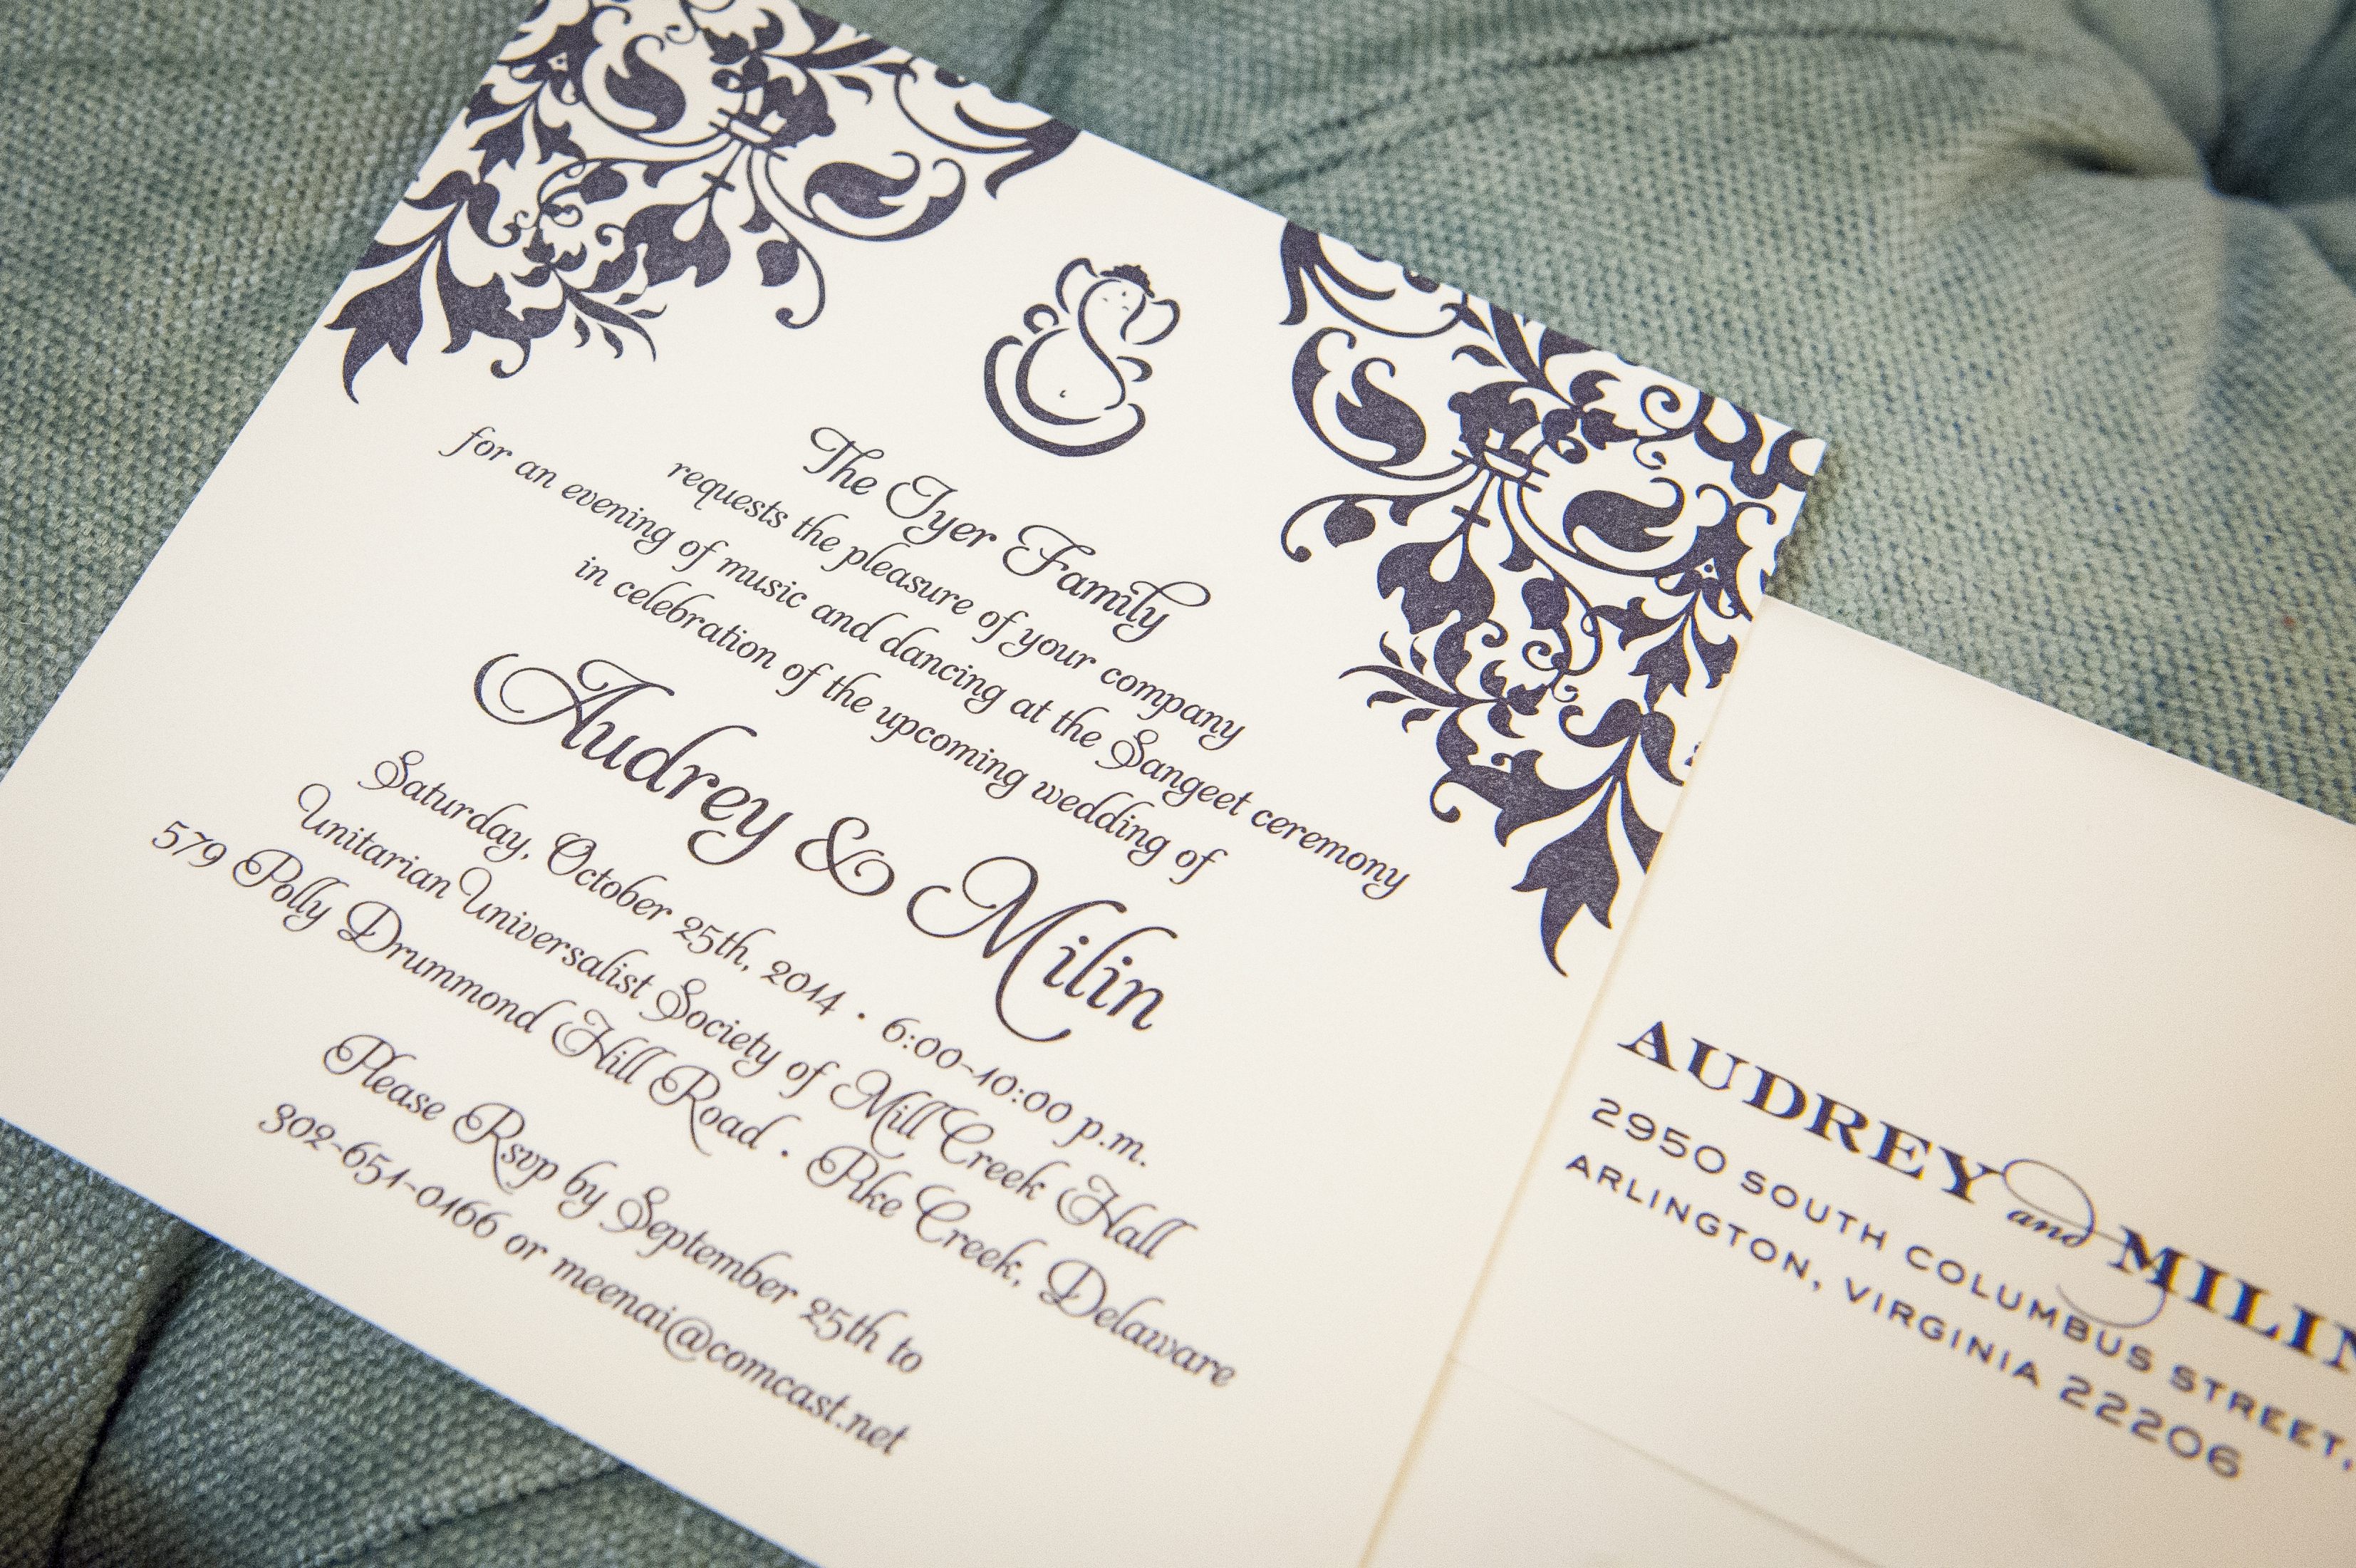 DC-themed wedding at the historic Willard Intercontinental, Audrey ...